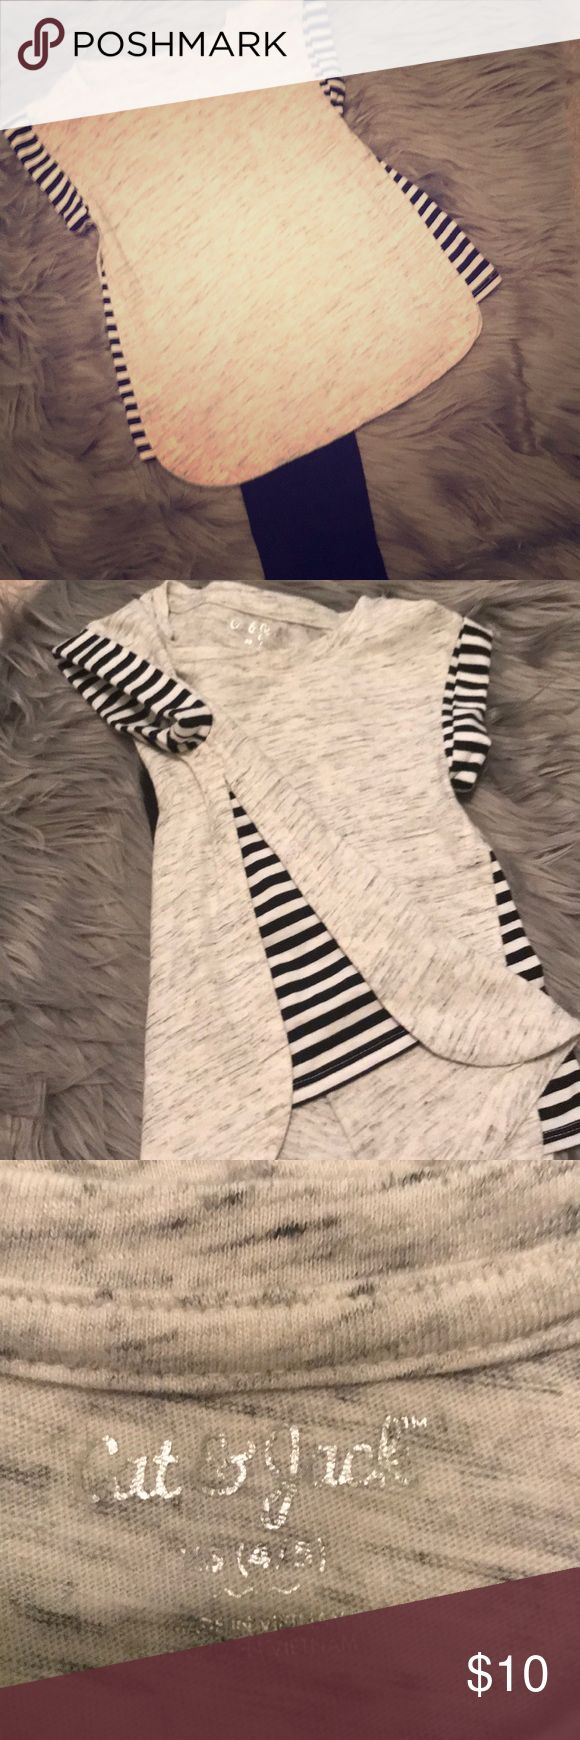 Gray wash tee with black and white stripes Gray wash tee with black and white striped sleeves and stripes down side of shirt. Excellent condition! Smoke free home. No stains, rips, or fading. Super cute with leggings and black glitter high tops! Shirts & Tops Tees - Short Sleeve